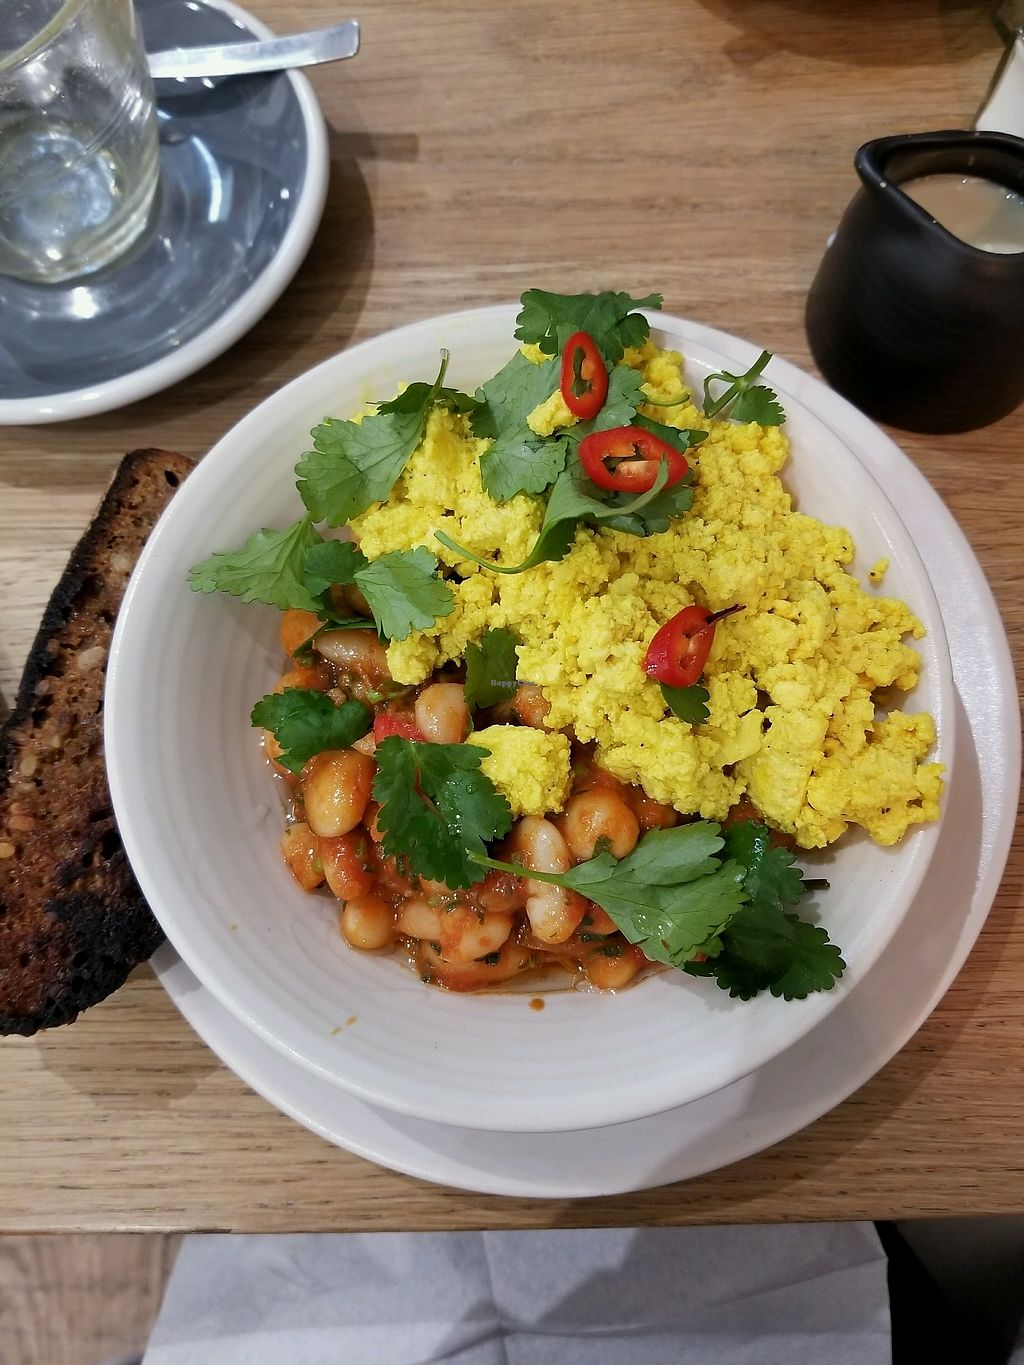 "Photo of Kin Cafe  by <a href=""/members/profile/tikhonova87"">tikhonova87</a> <br/>Mexican breakfast vegan option <br/> March 19, 2018  - <a href='/contact/abuse/image/49333/372798'>Report</a>"